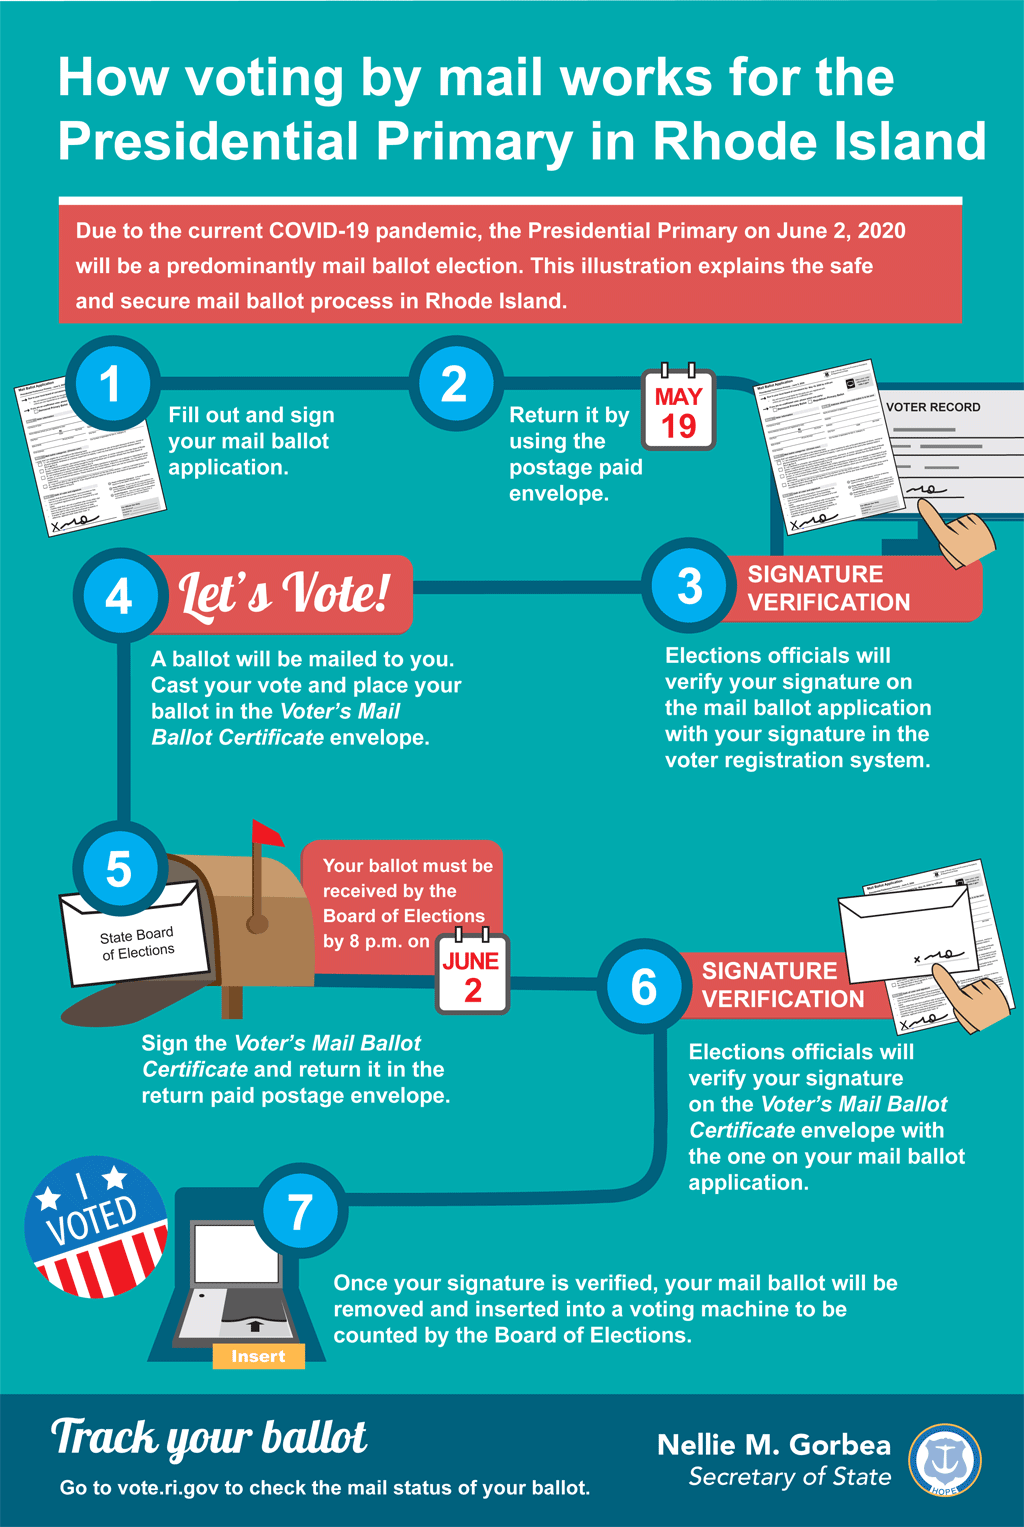 How voting by mail works for the Presidential Primary in Rhode Island